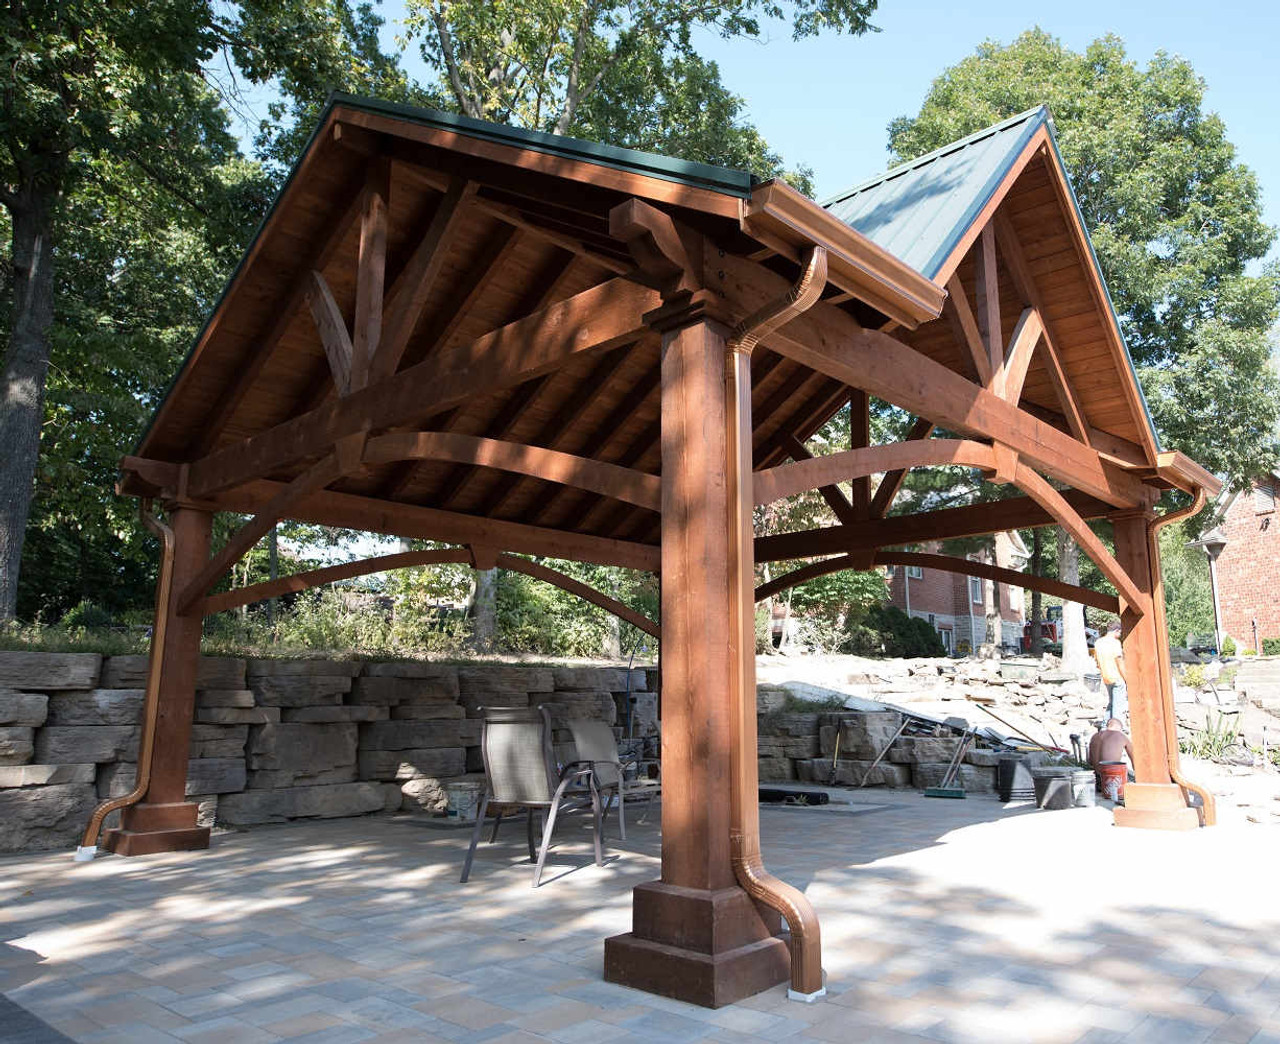 10 inch by 10 inch Rough Sawn Posts on 20x20 Grand Cedar Pavilion with Third Gable, St. Charles, MO